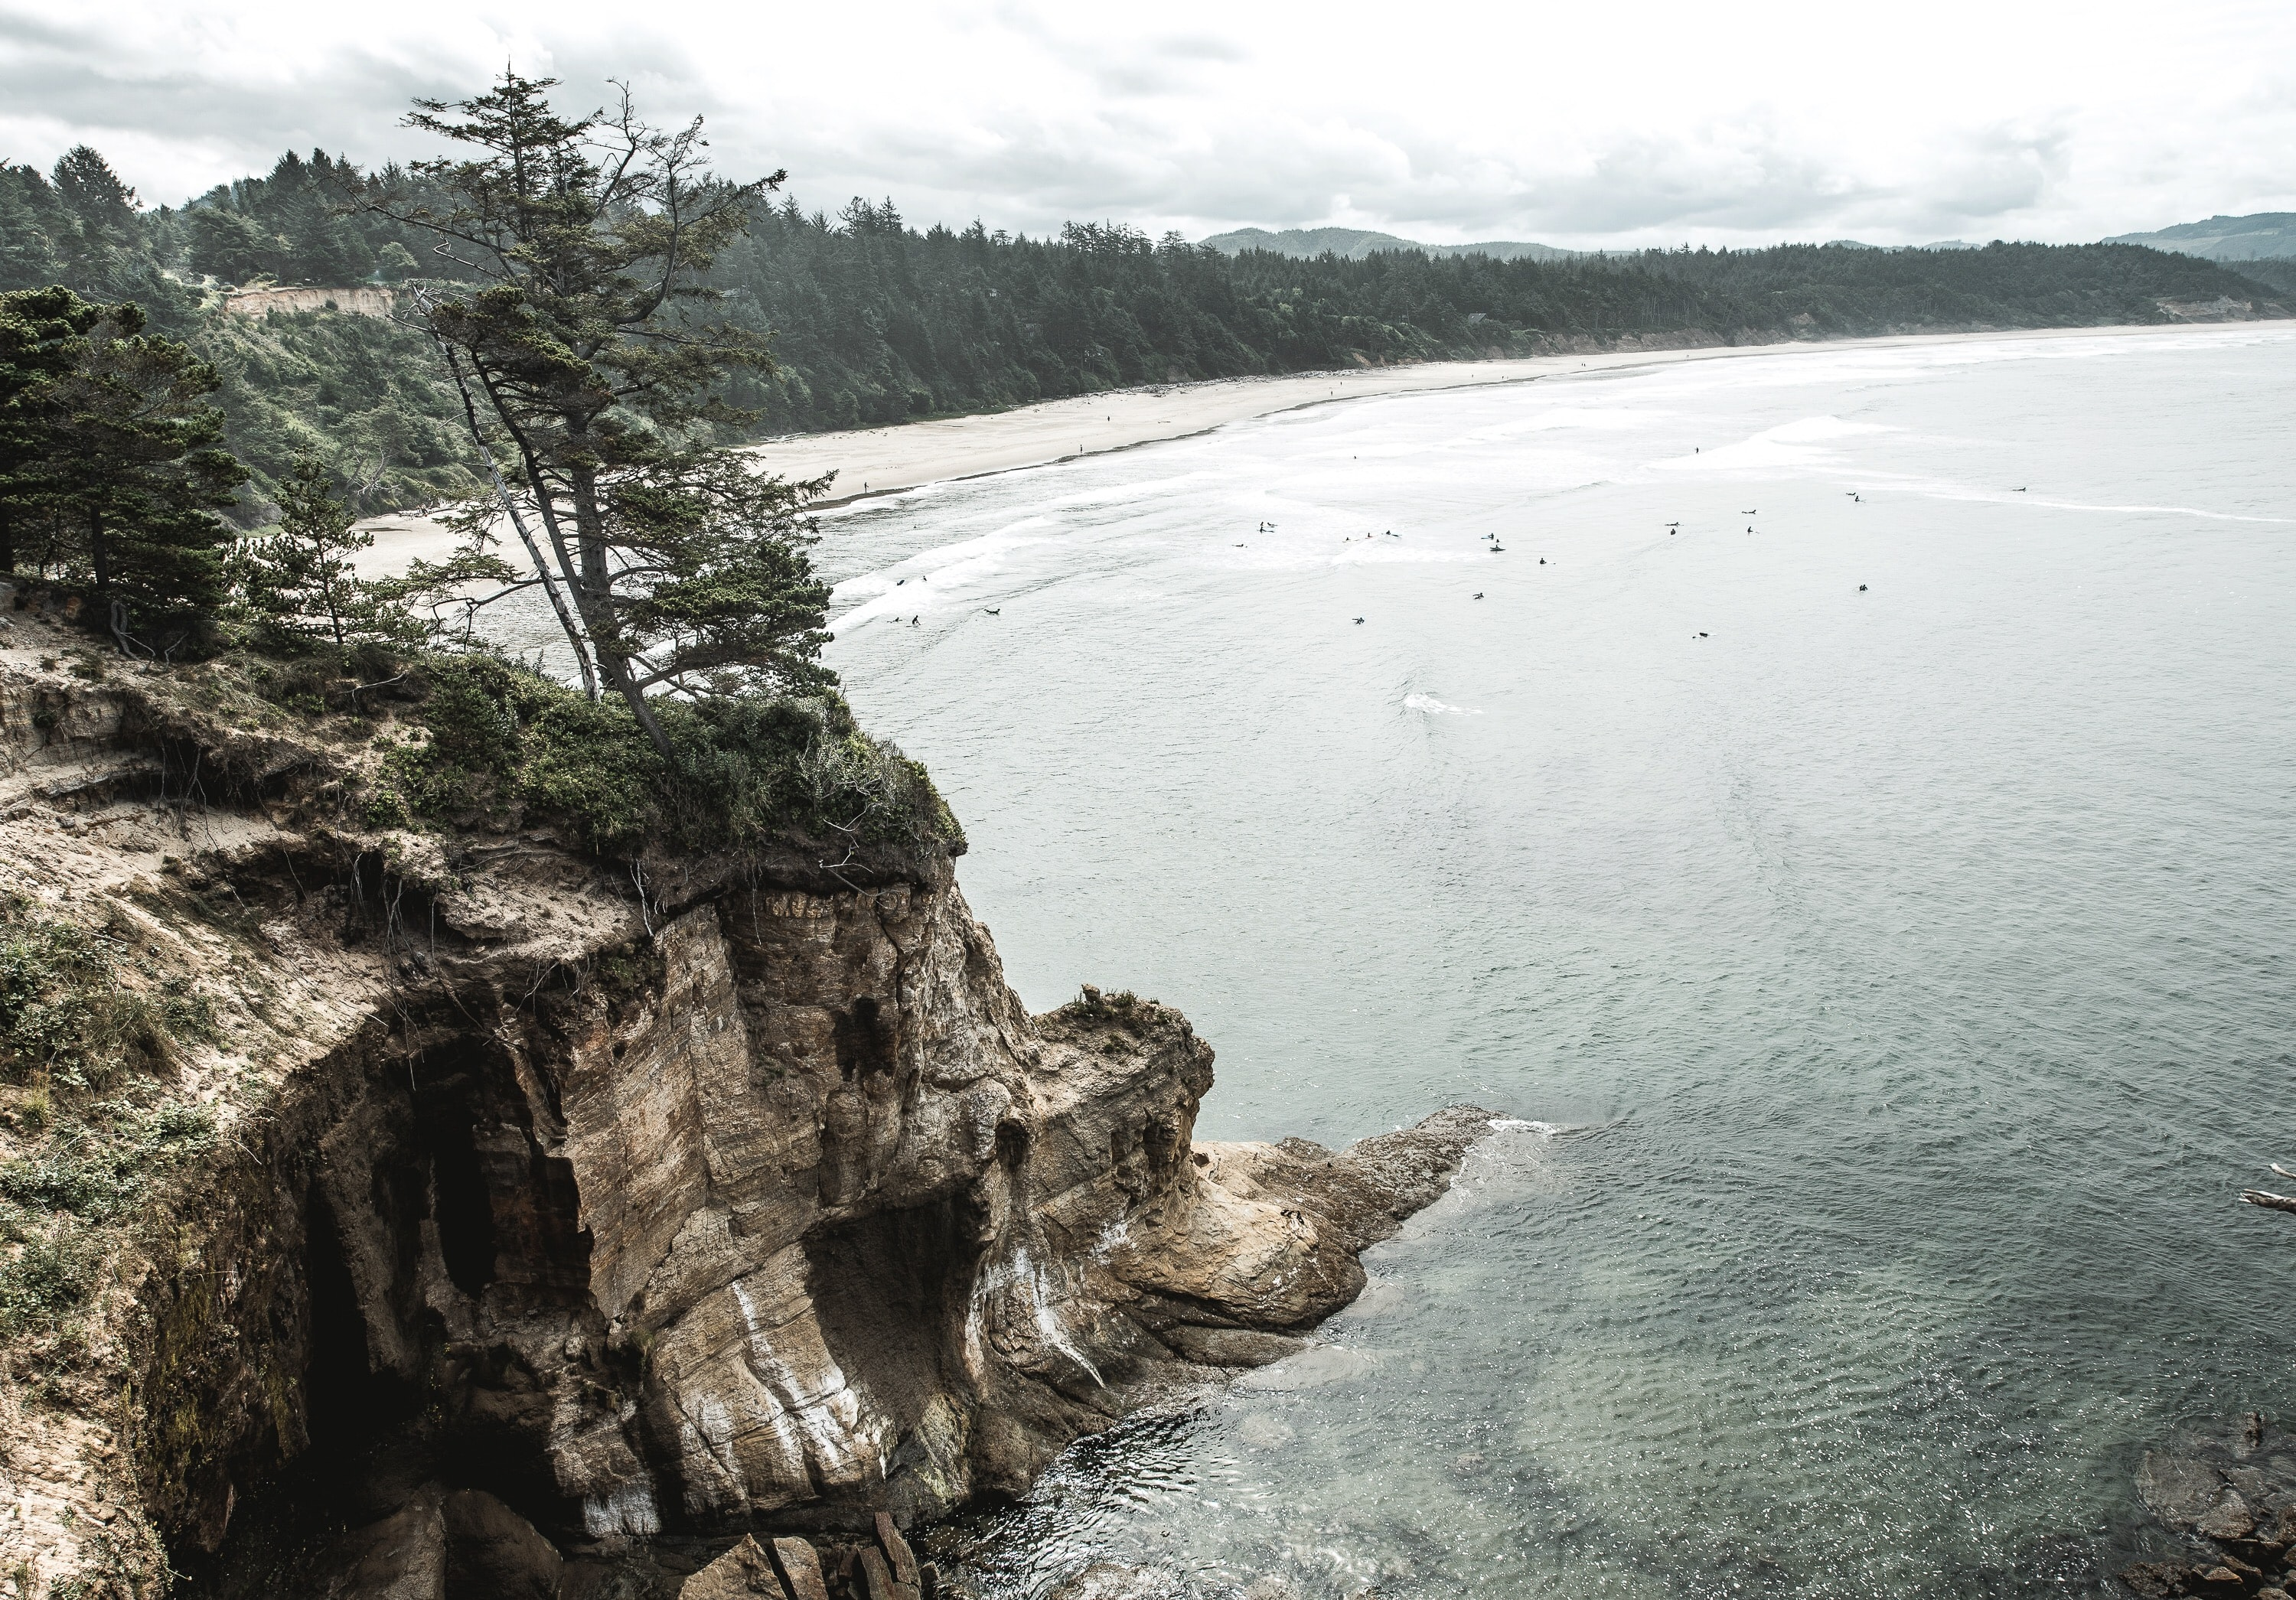 A dramatic shot of a rocky cliff connecting to a wooded shoreline on a body of water